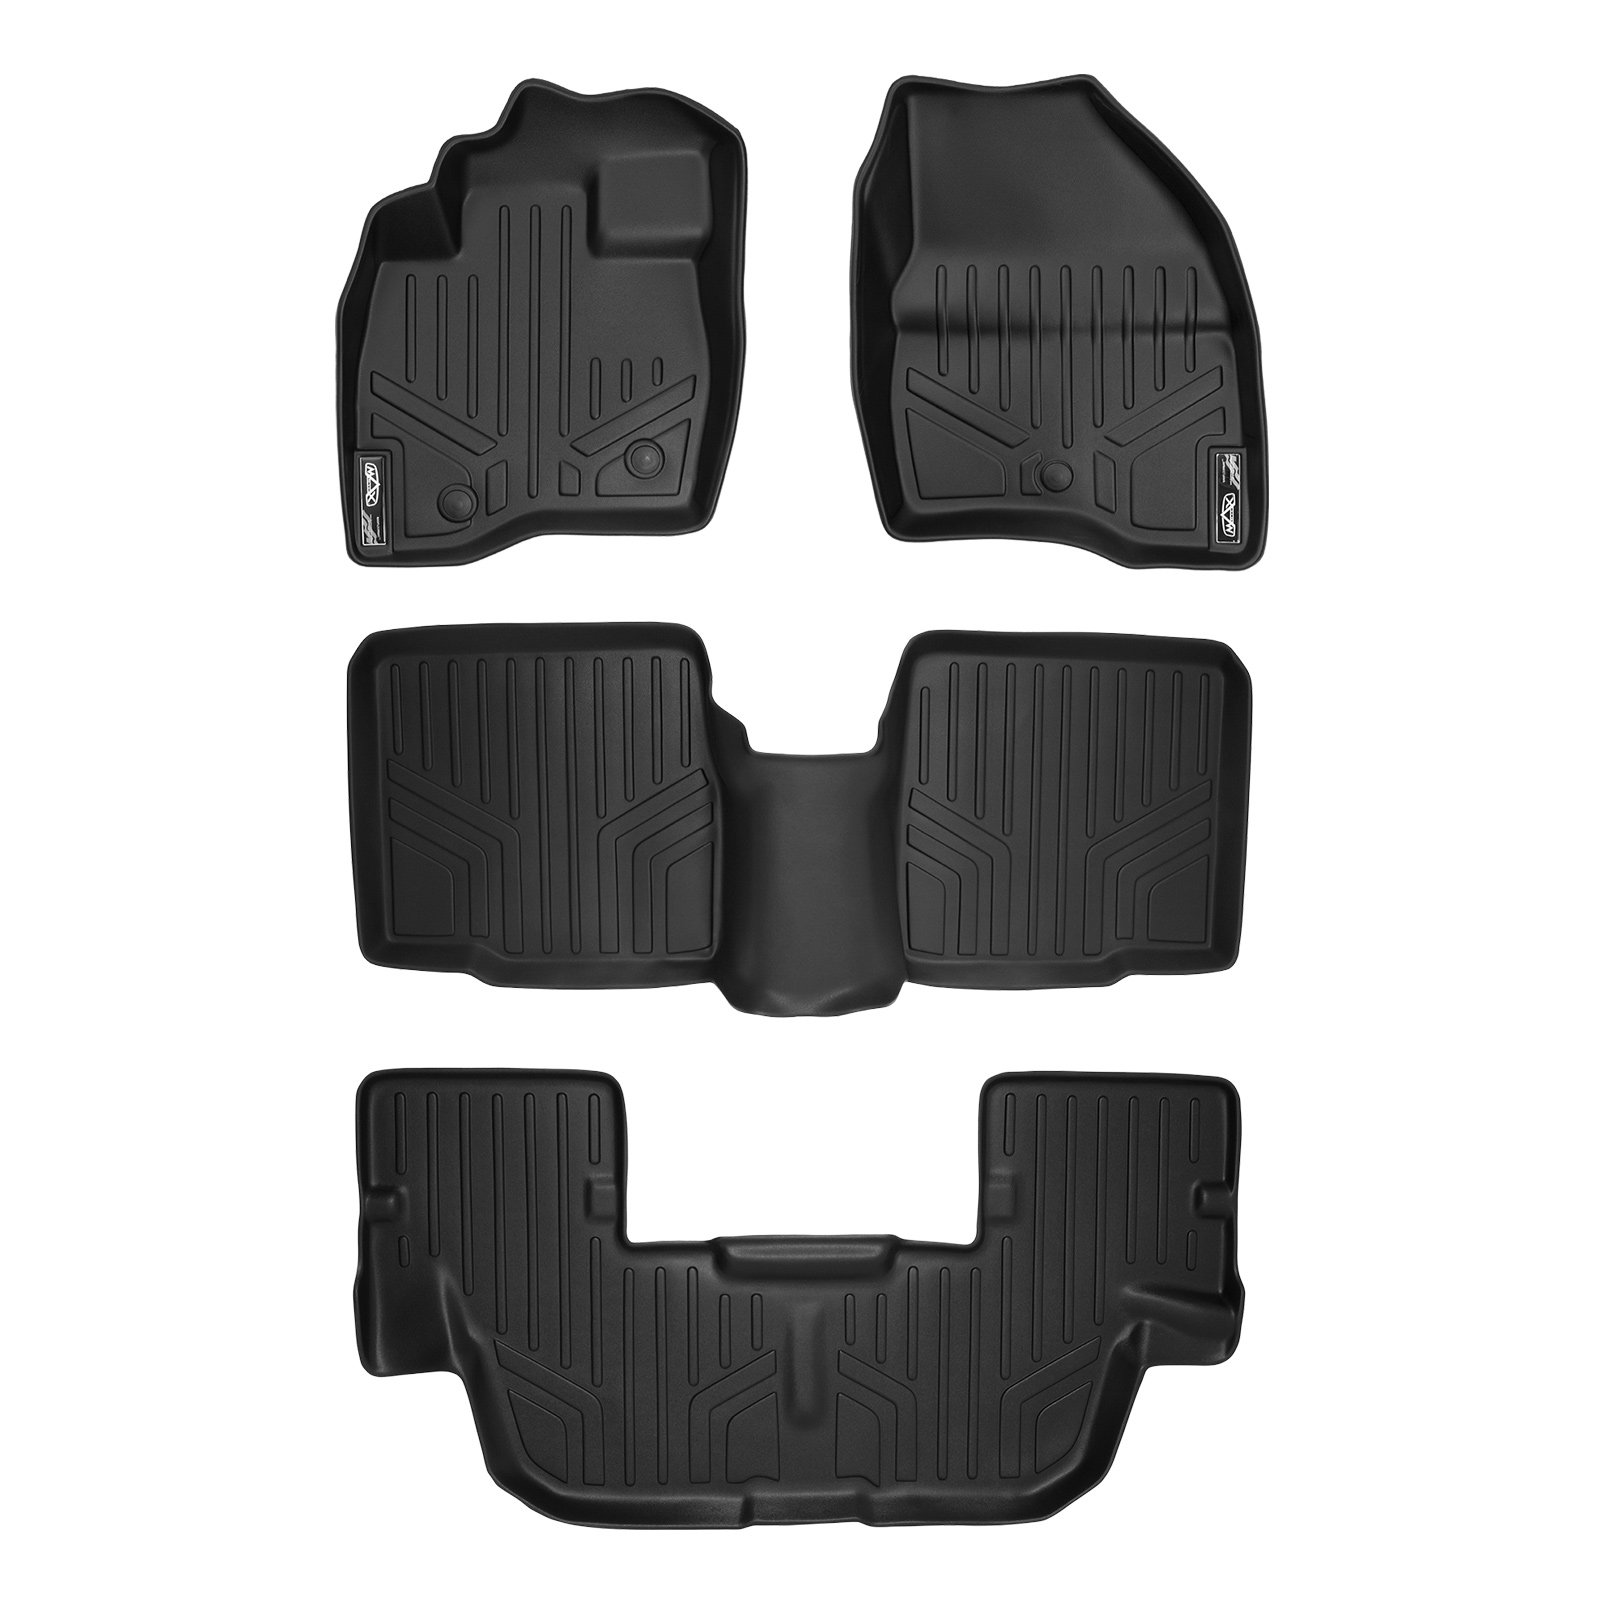 MAX LINER A0245/B0082/C0082 Custom Fit Floor Mats 3 Liner Set Black for 2017-2019 Ford Explorer Without 2nd Row Center Console